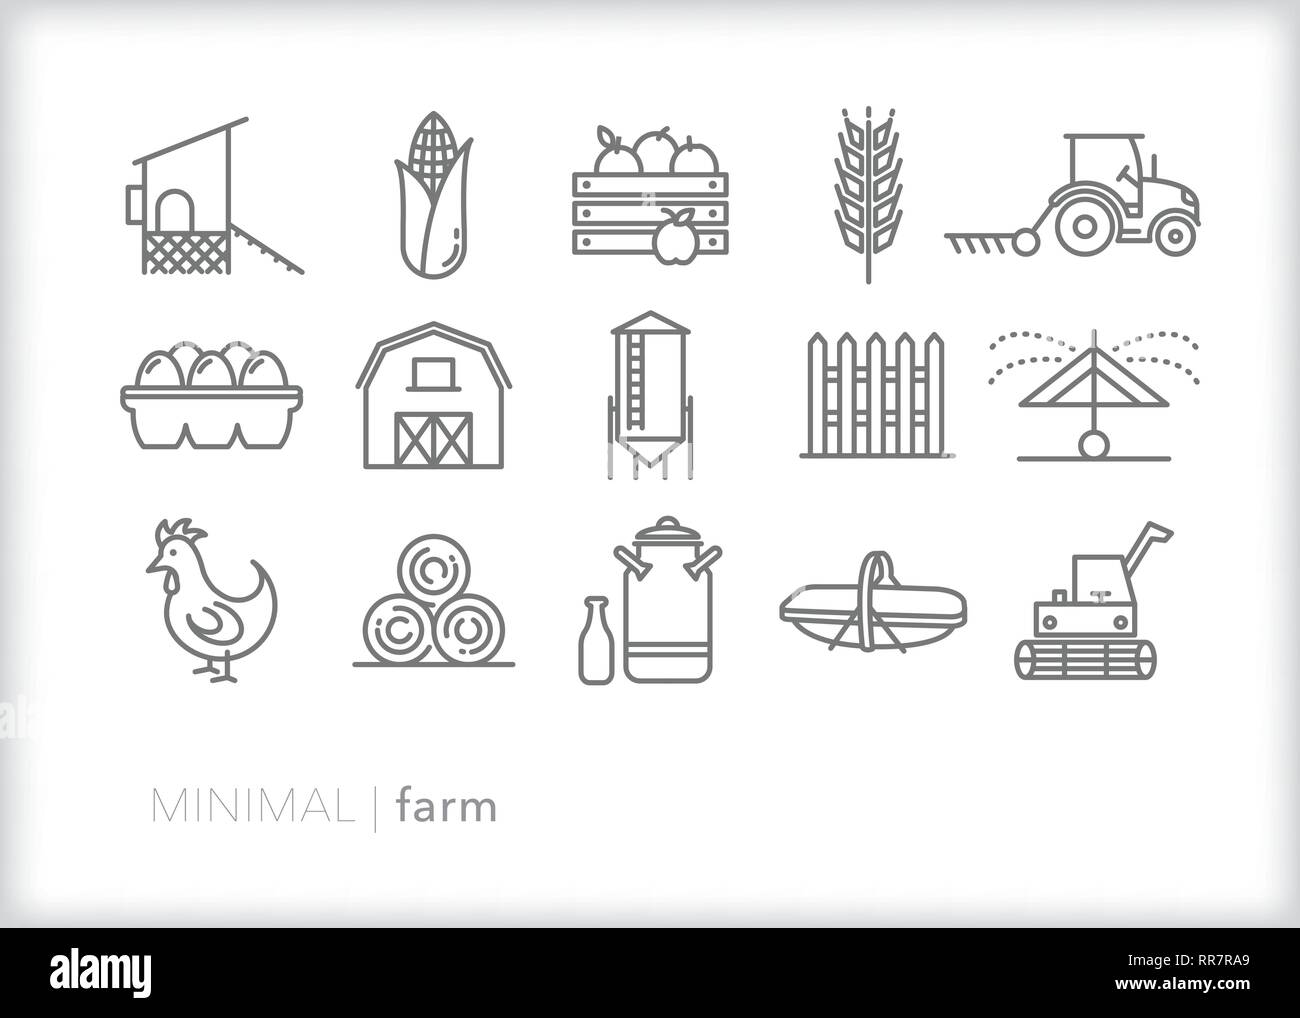 Set of 15 farm line icons for a family farm in a rural area growing livestock, agriculture, grain, vegetables or fruits including barn and equipment - Stock Vector